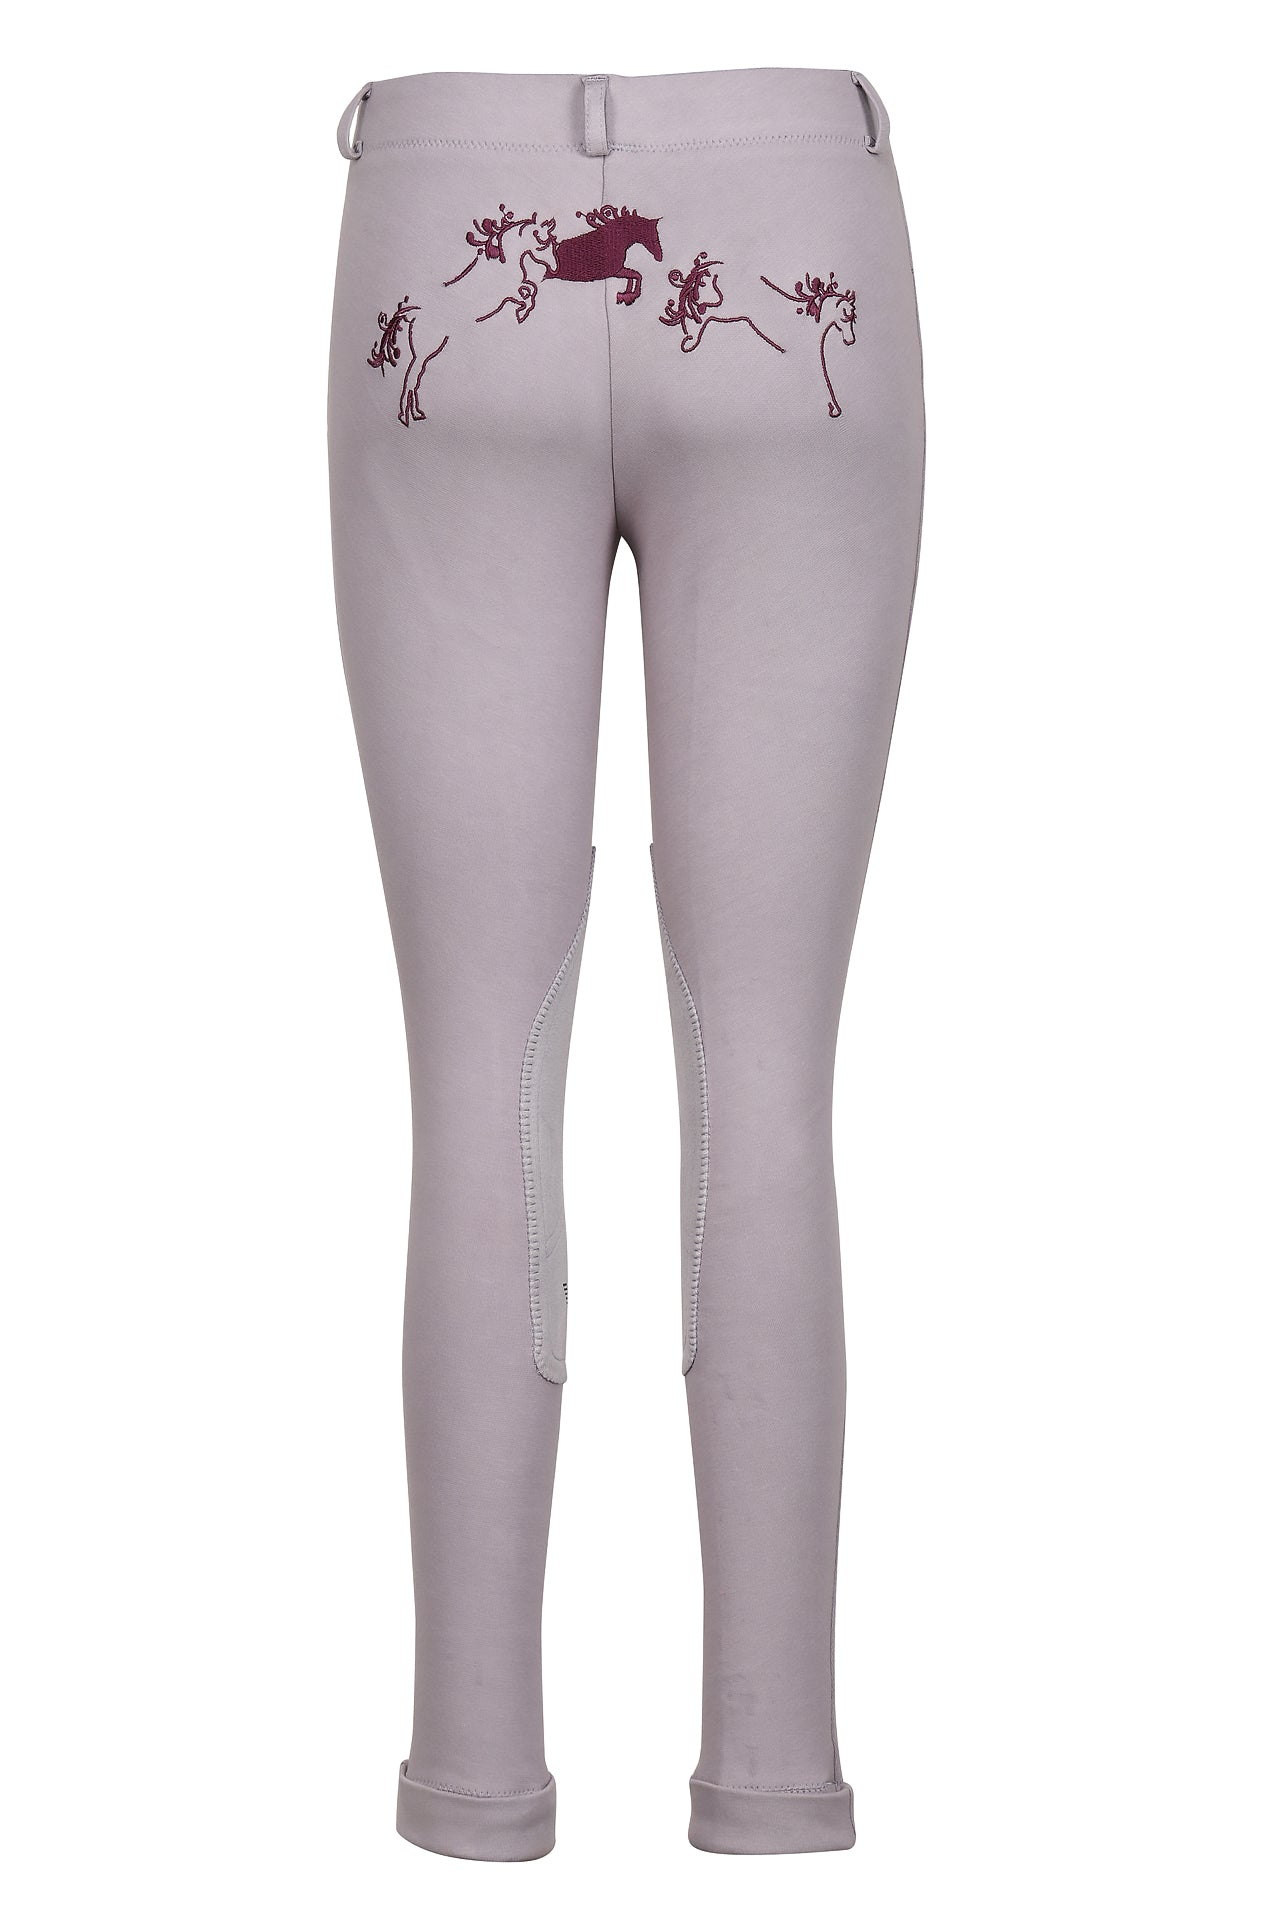 TuffRider Children's Whimsical Horse Embroidered Pull-On Jodhpurs_1030